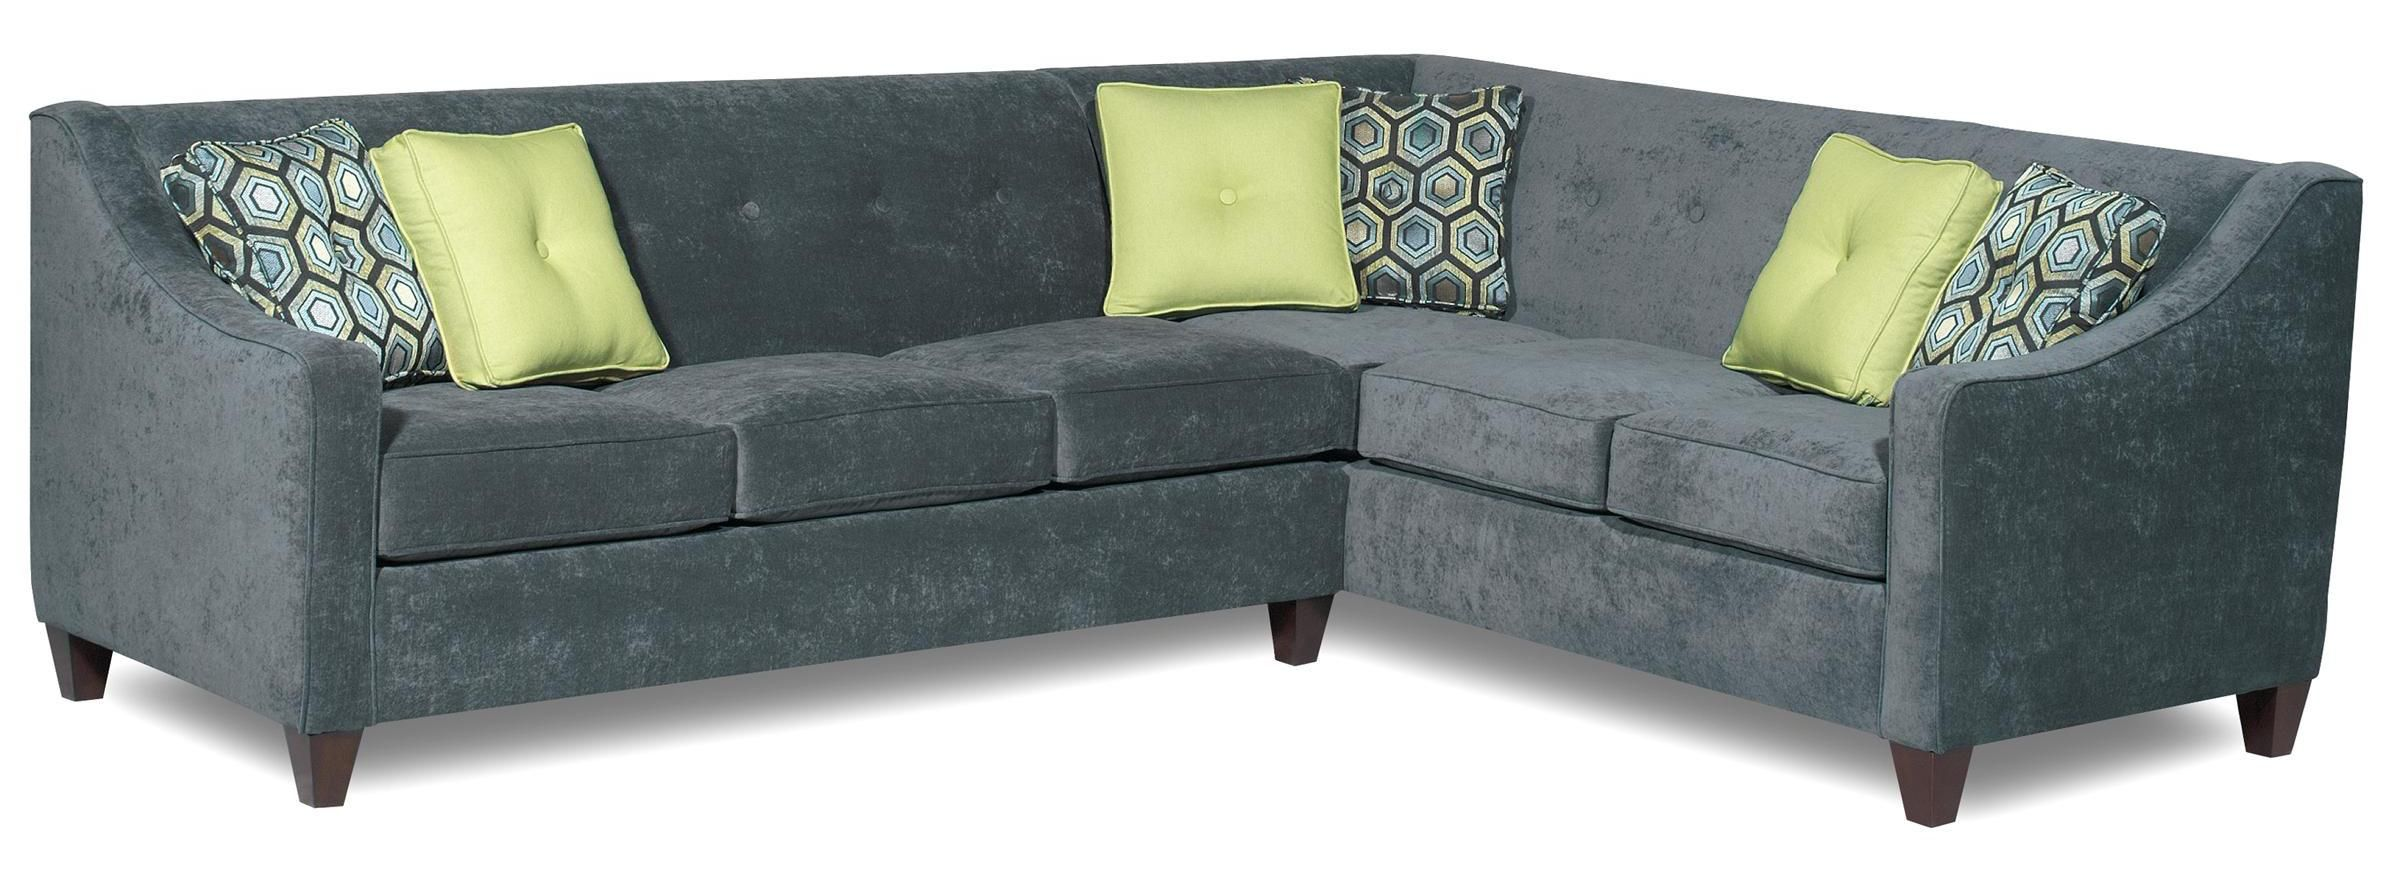 tight back sofas small sofa bed with chaise hard to find 706951 contemporary 2